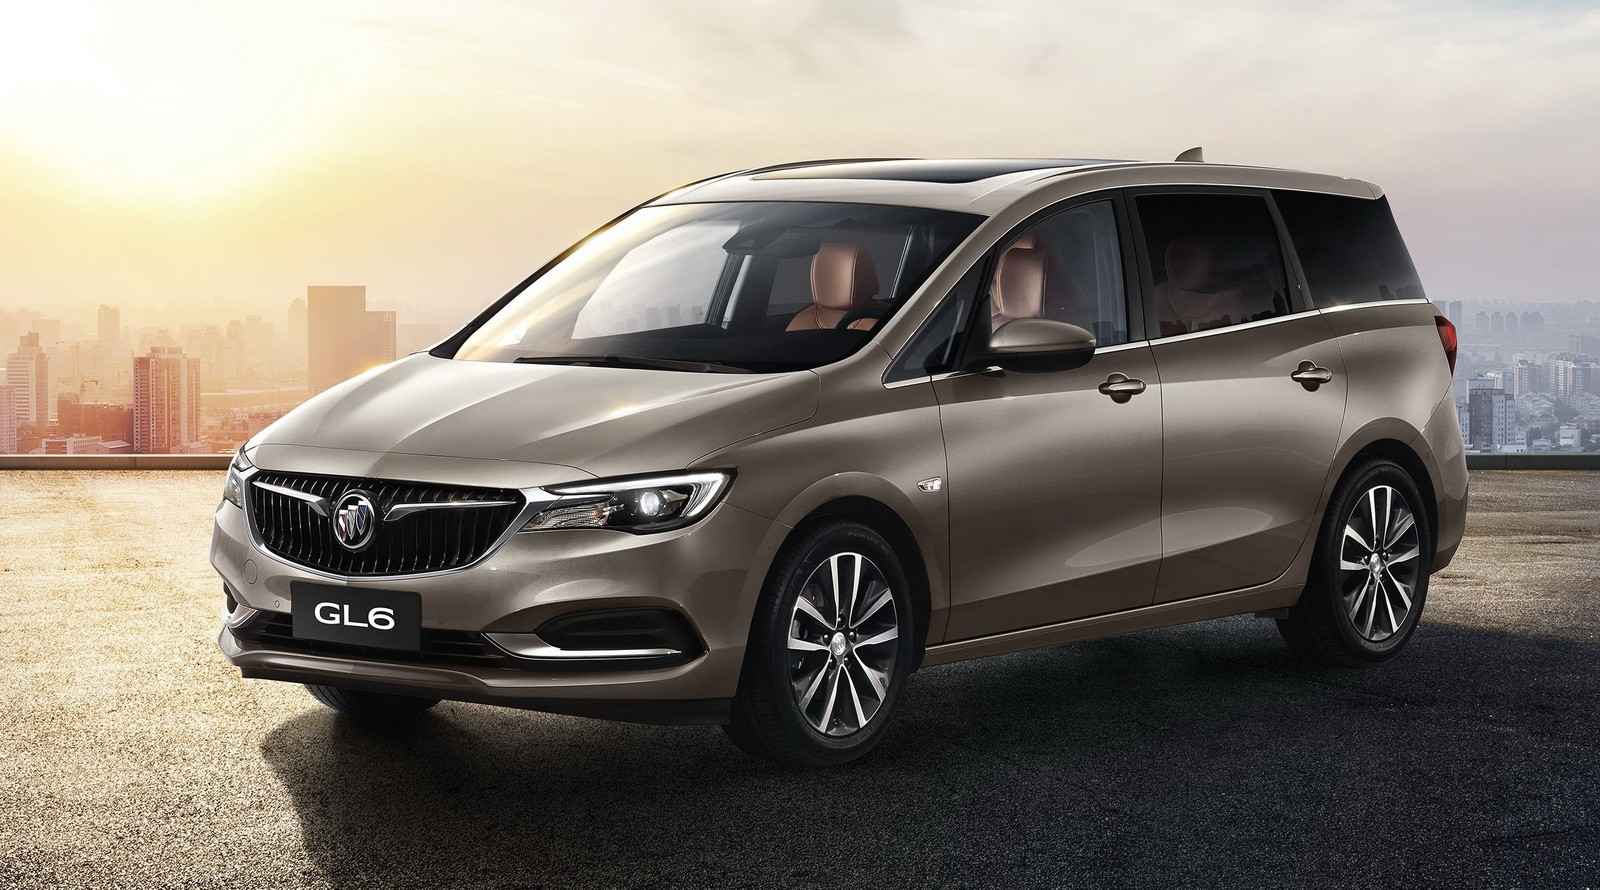 Buick Excelle Gx Wagon And Gl6 Minivan Unveiled In China Autoevolution